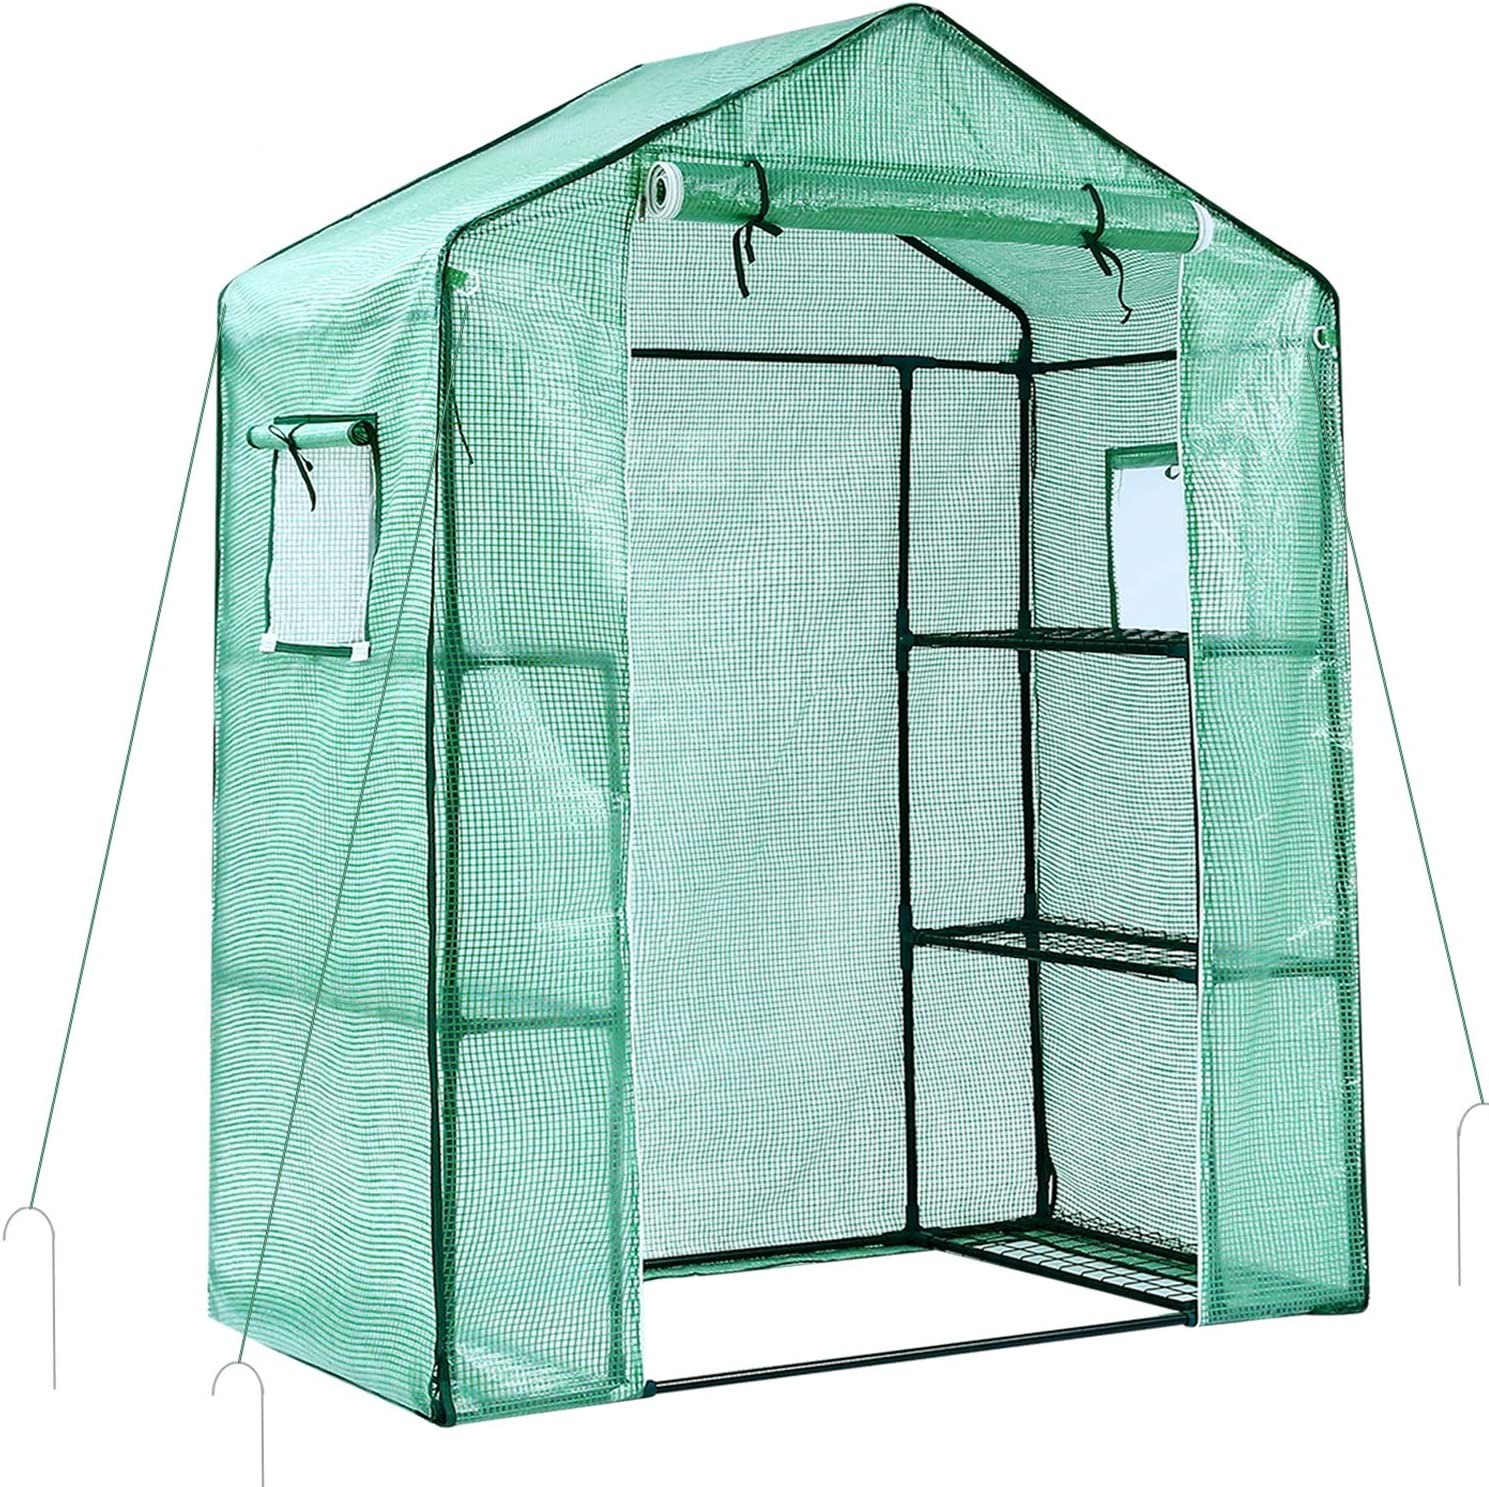 Ohuhu Greenhouse for Outdoors with Observation Windows New Version